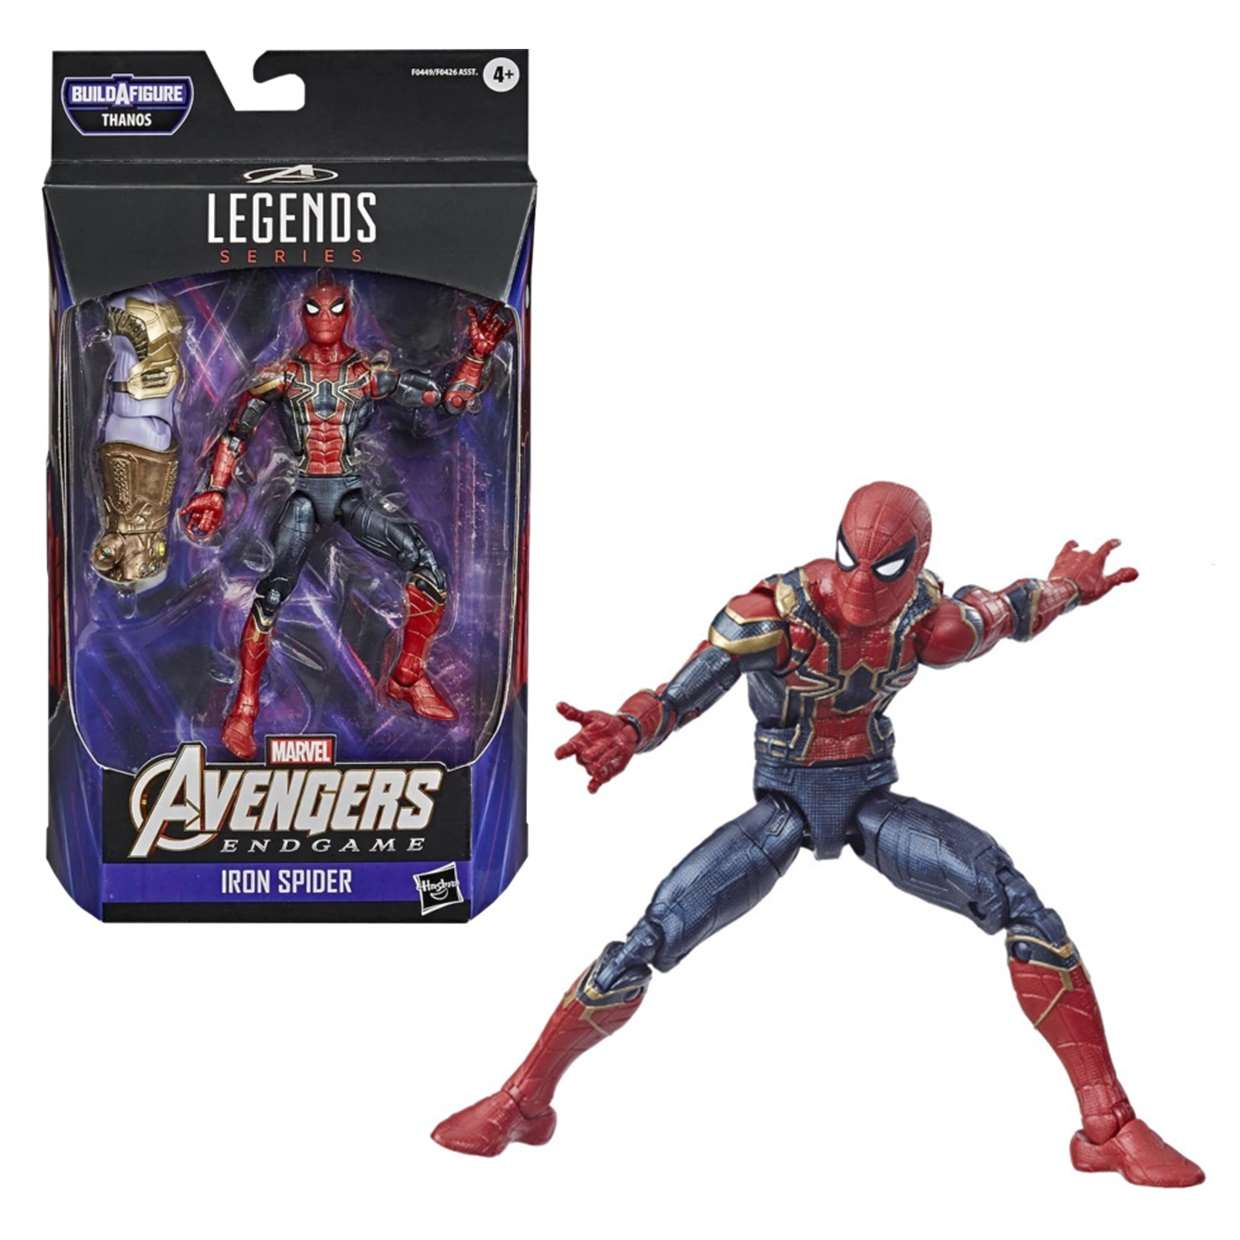 Iron Spider Figura Avengers End Game B A F Thanos Legends